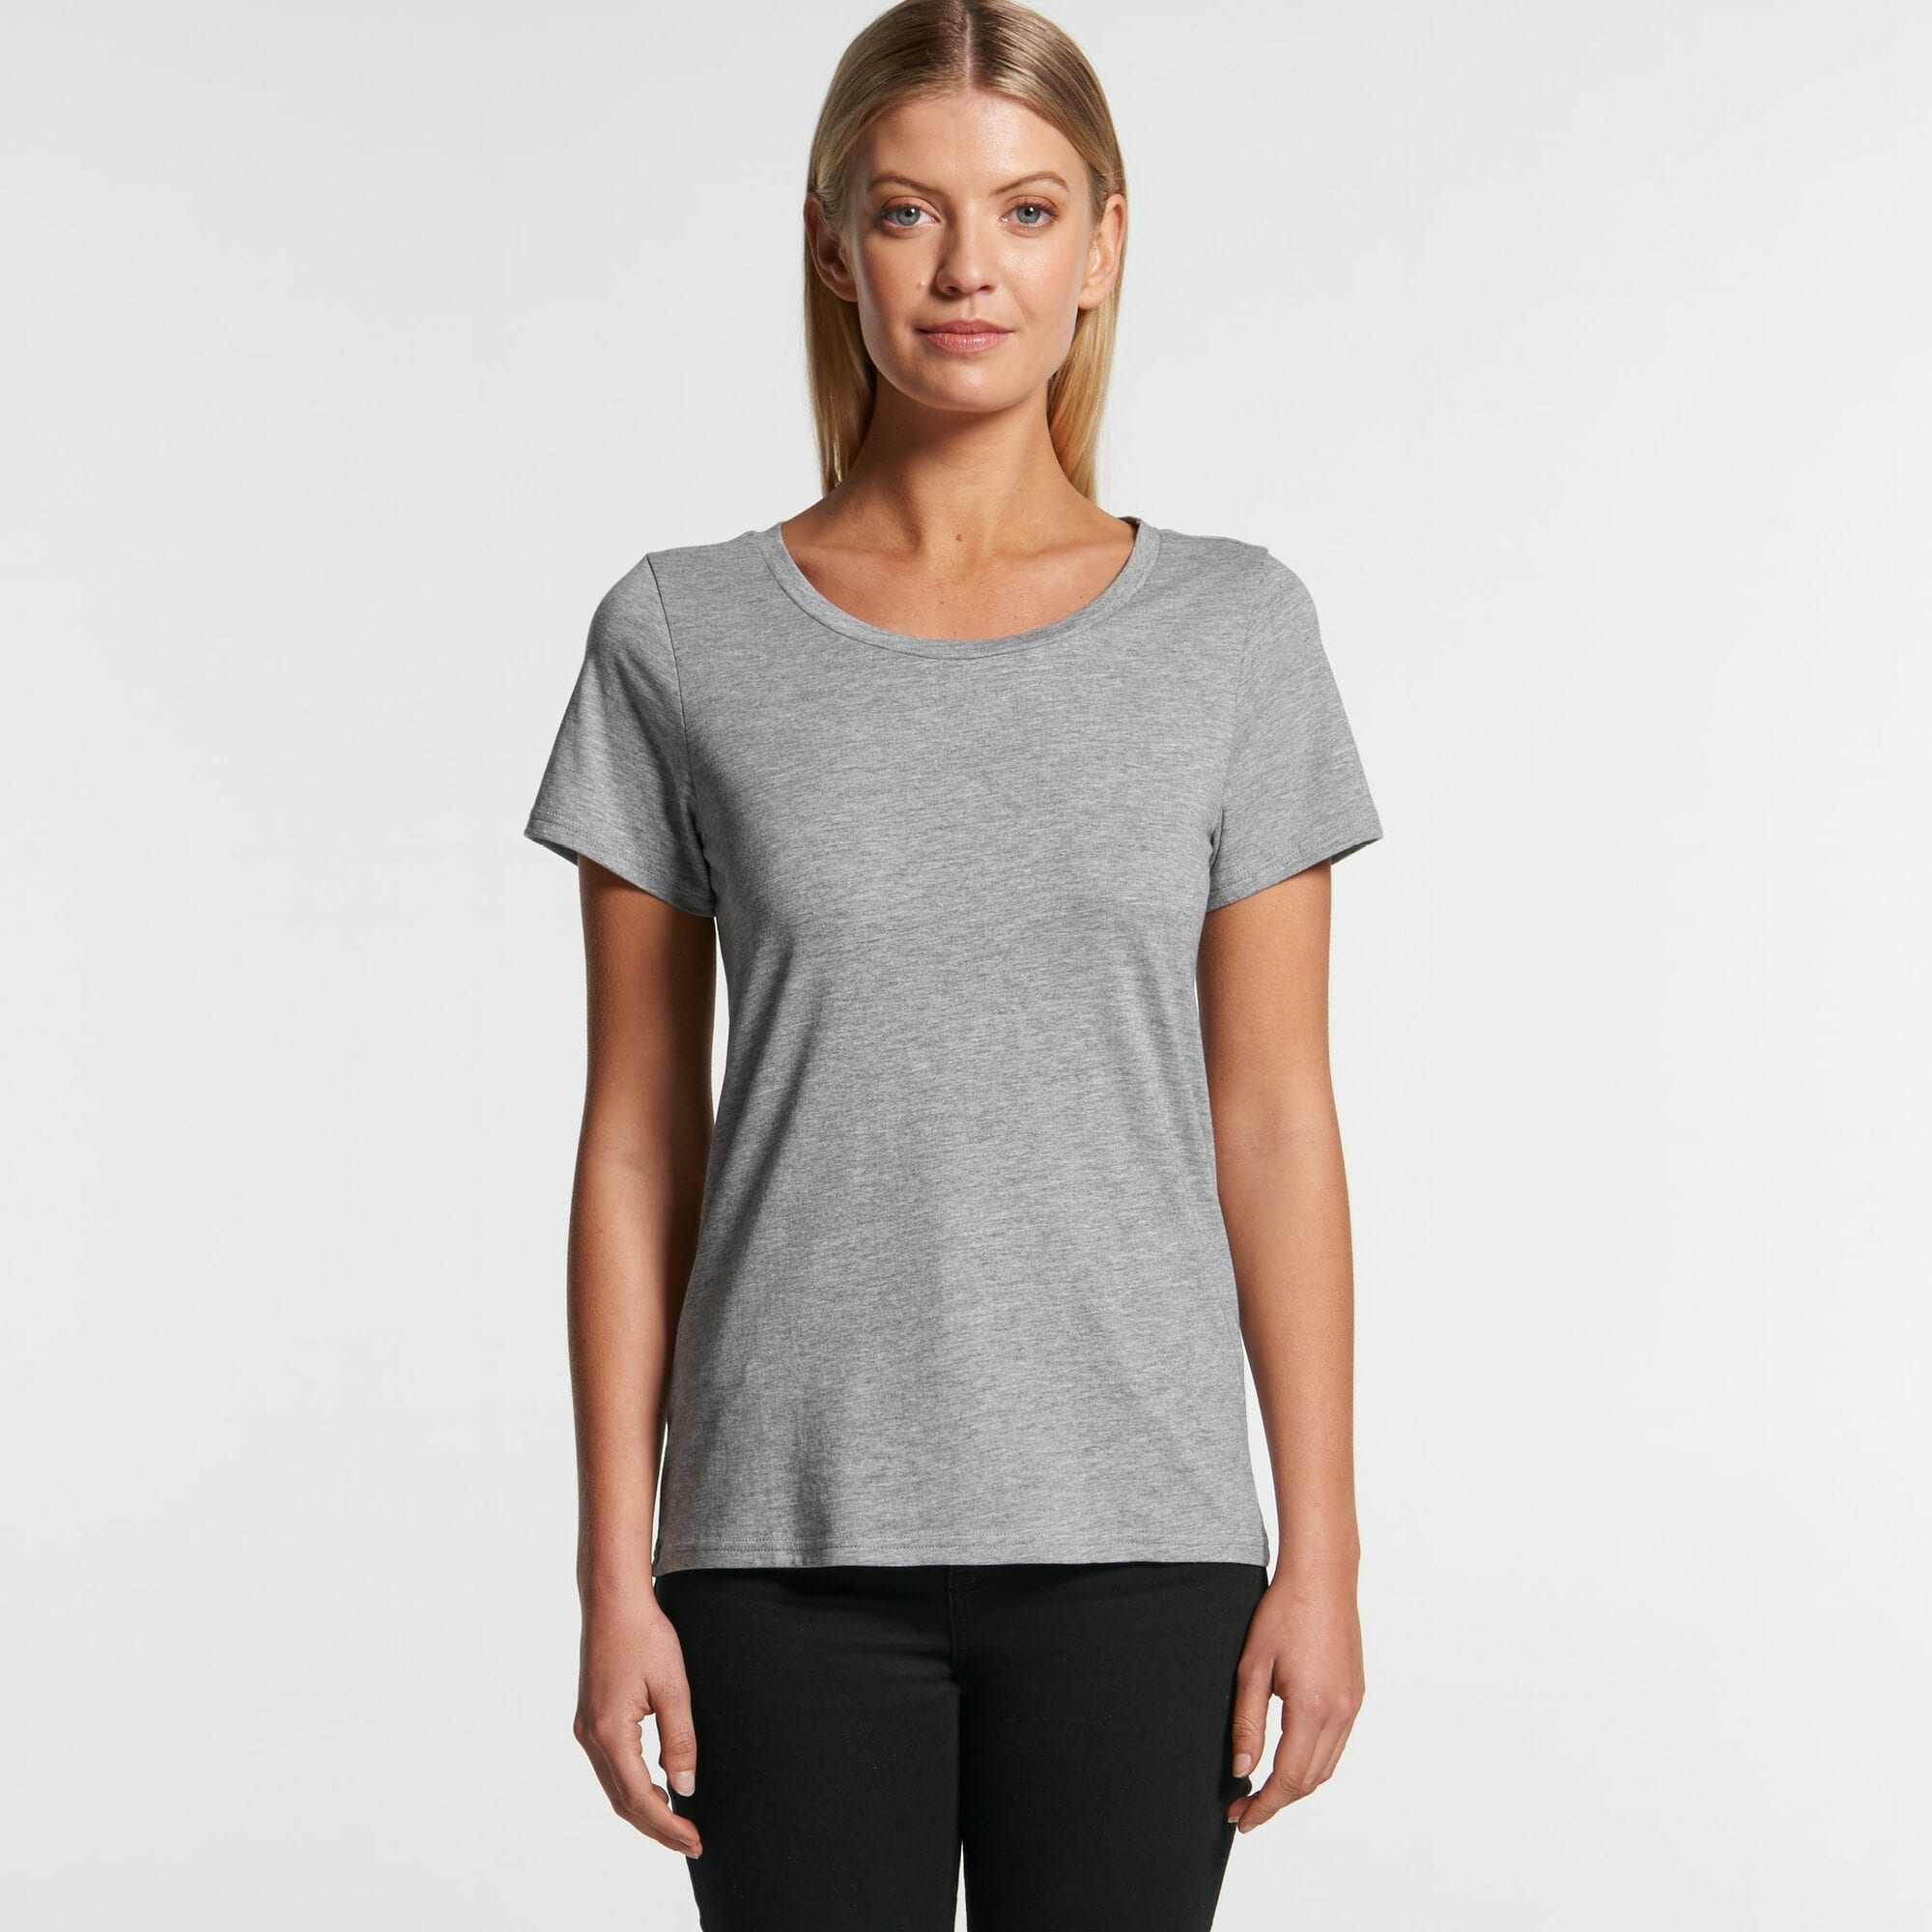 AS 4011 Womens Shallow Scoop Tee